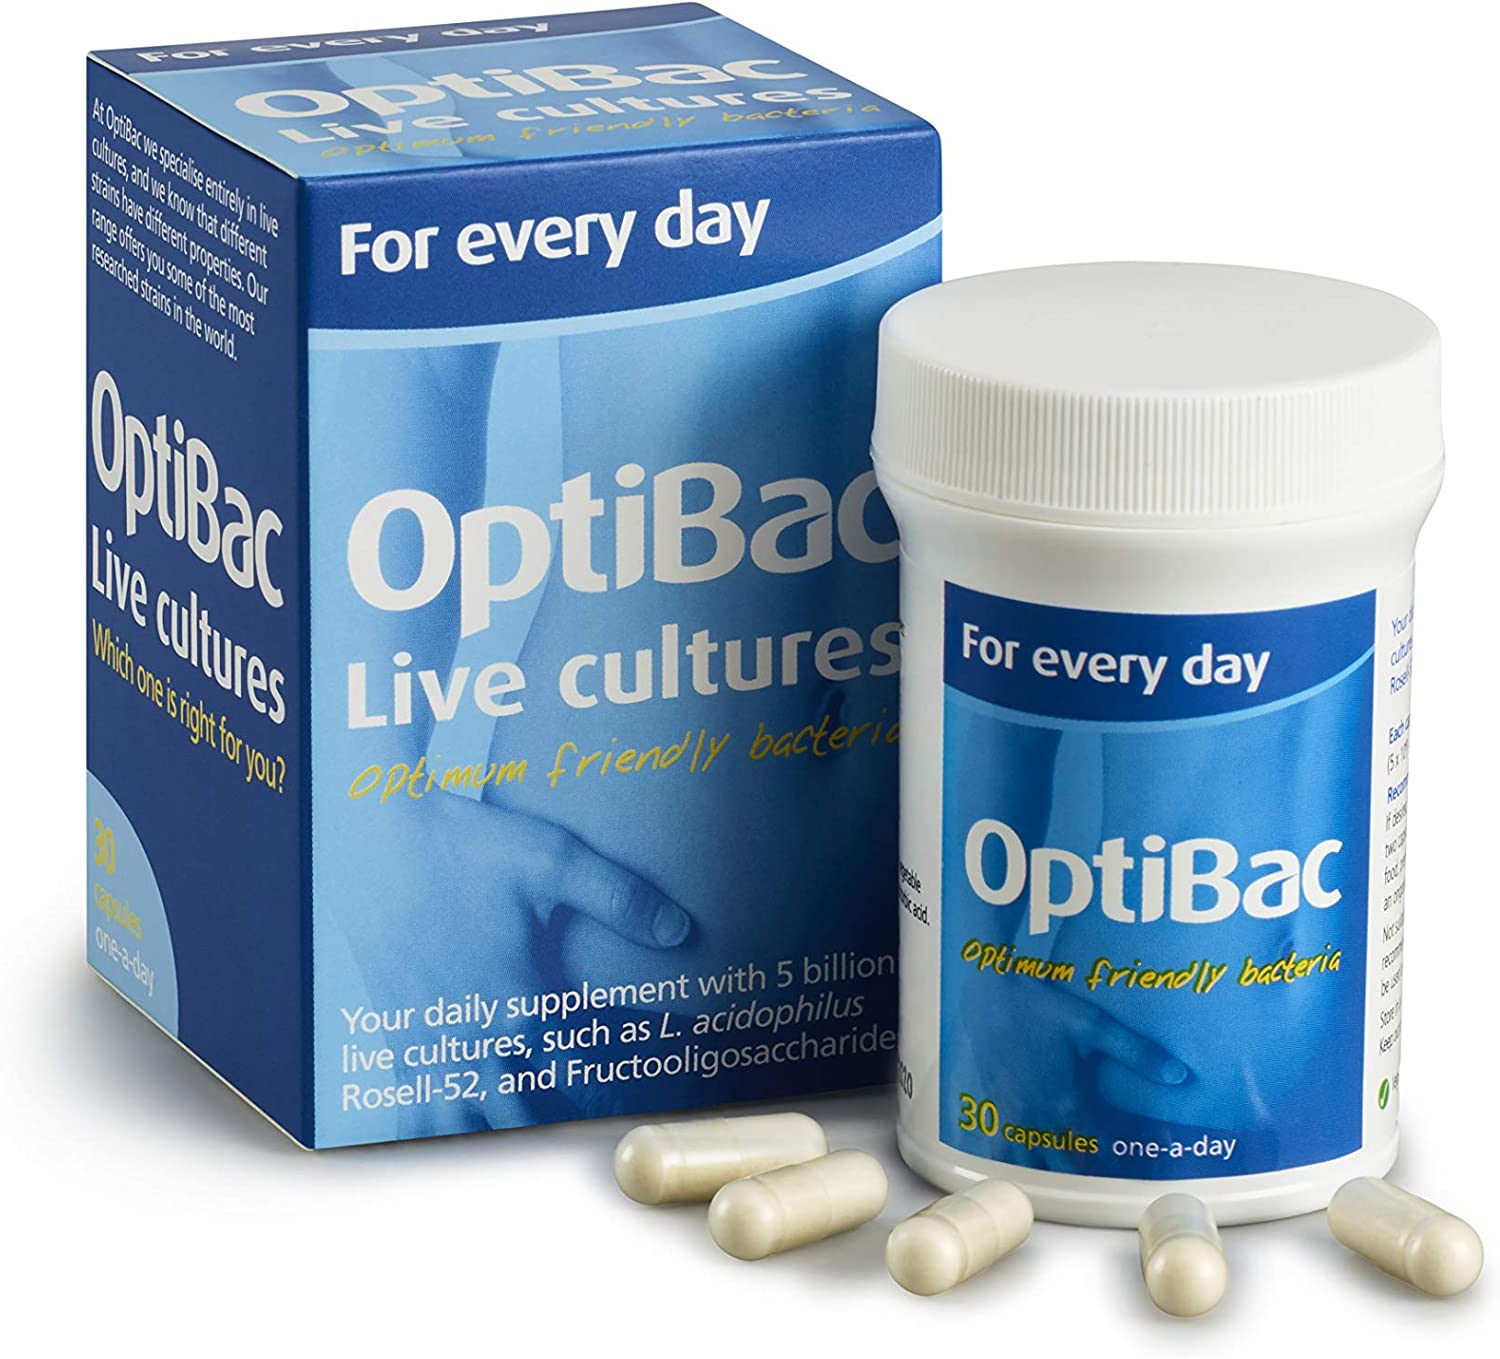 Optibac Probiotics for Daily Wellbeing - Pack of 30 Capsules